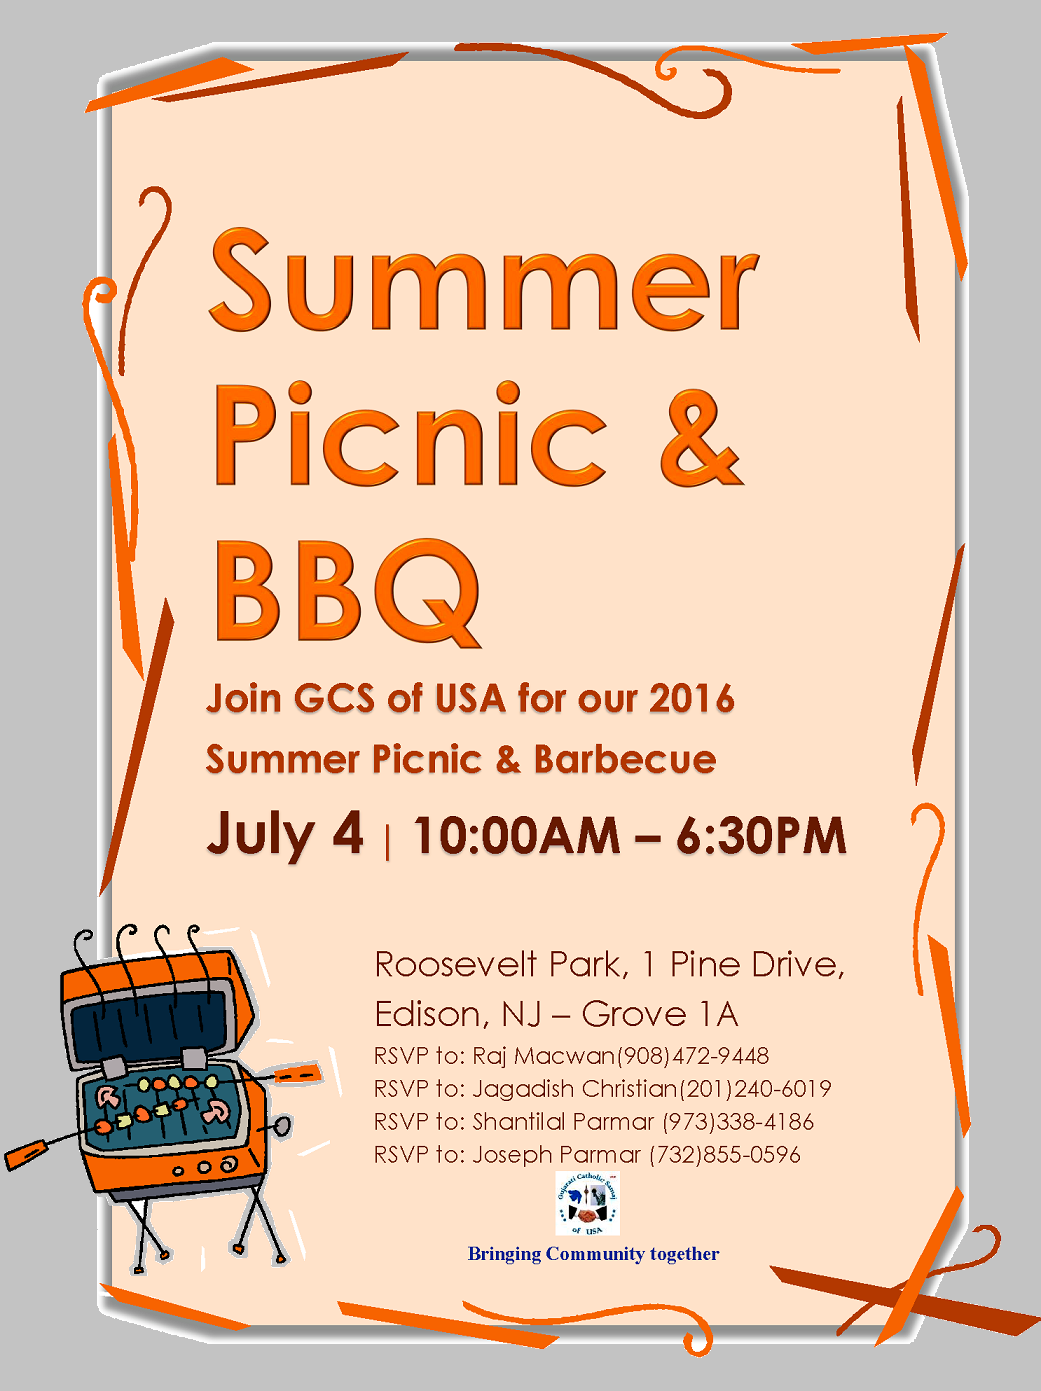 Summer Picnic-Barbecue 2016